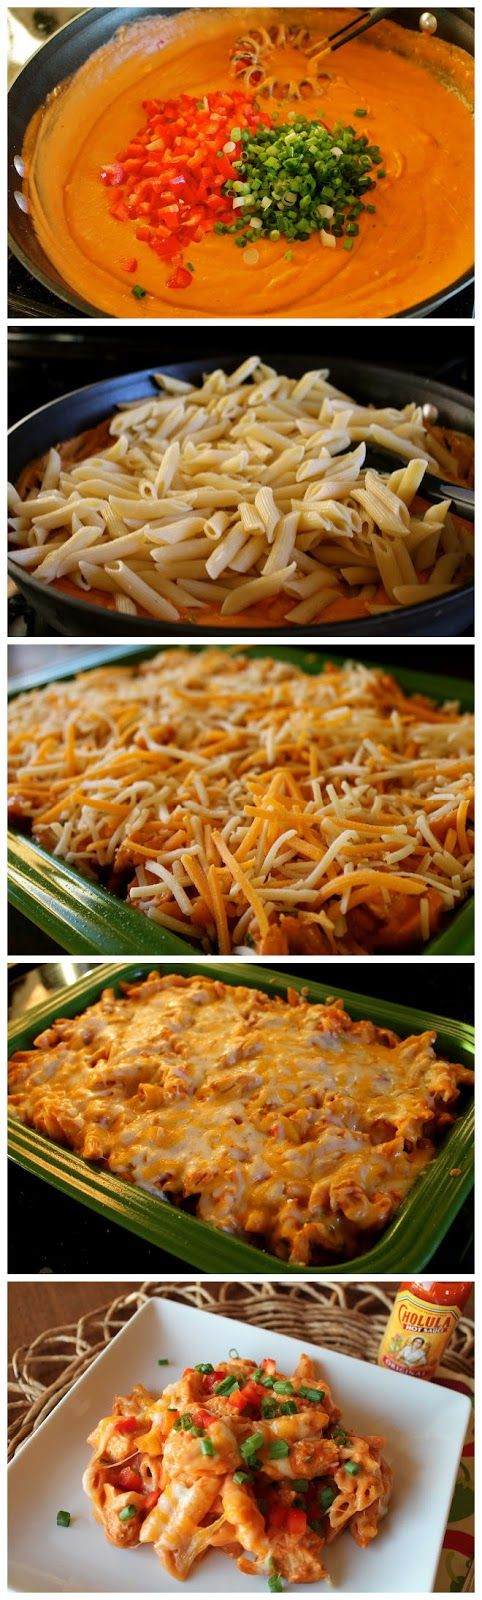 Cheesy Chicken Enchilada Pasta: 3 Chicken breasts, Salt and Pepper for seasoning, 1 lb Penne Pasta, 1 Red pepper, Chopped 6 Green Onions, Chopped 3 tablespoons Butter, 1/4 cup Flour 28 oz mild or hot Enchilada Sauce, 4 oz Cream Cheese (1/3 the fat), 1+1/2 cups Mexican Blend Cheese (STEP BY STEP IMAGES)